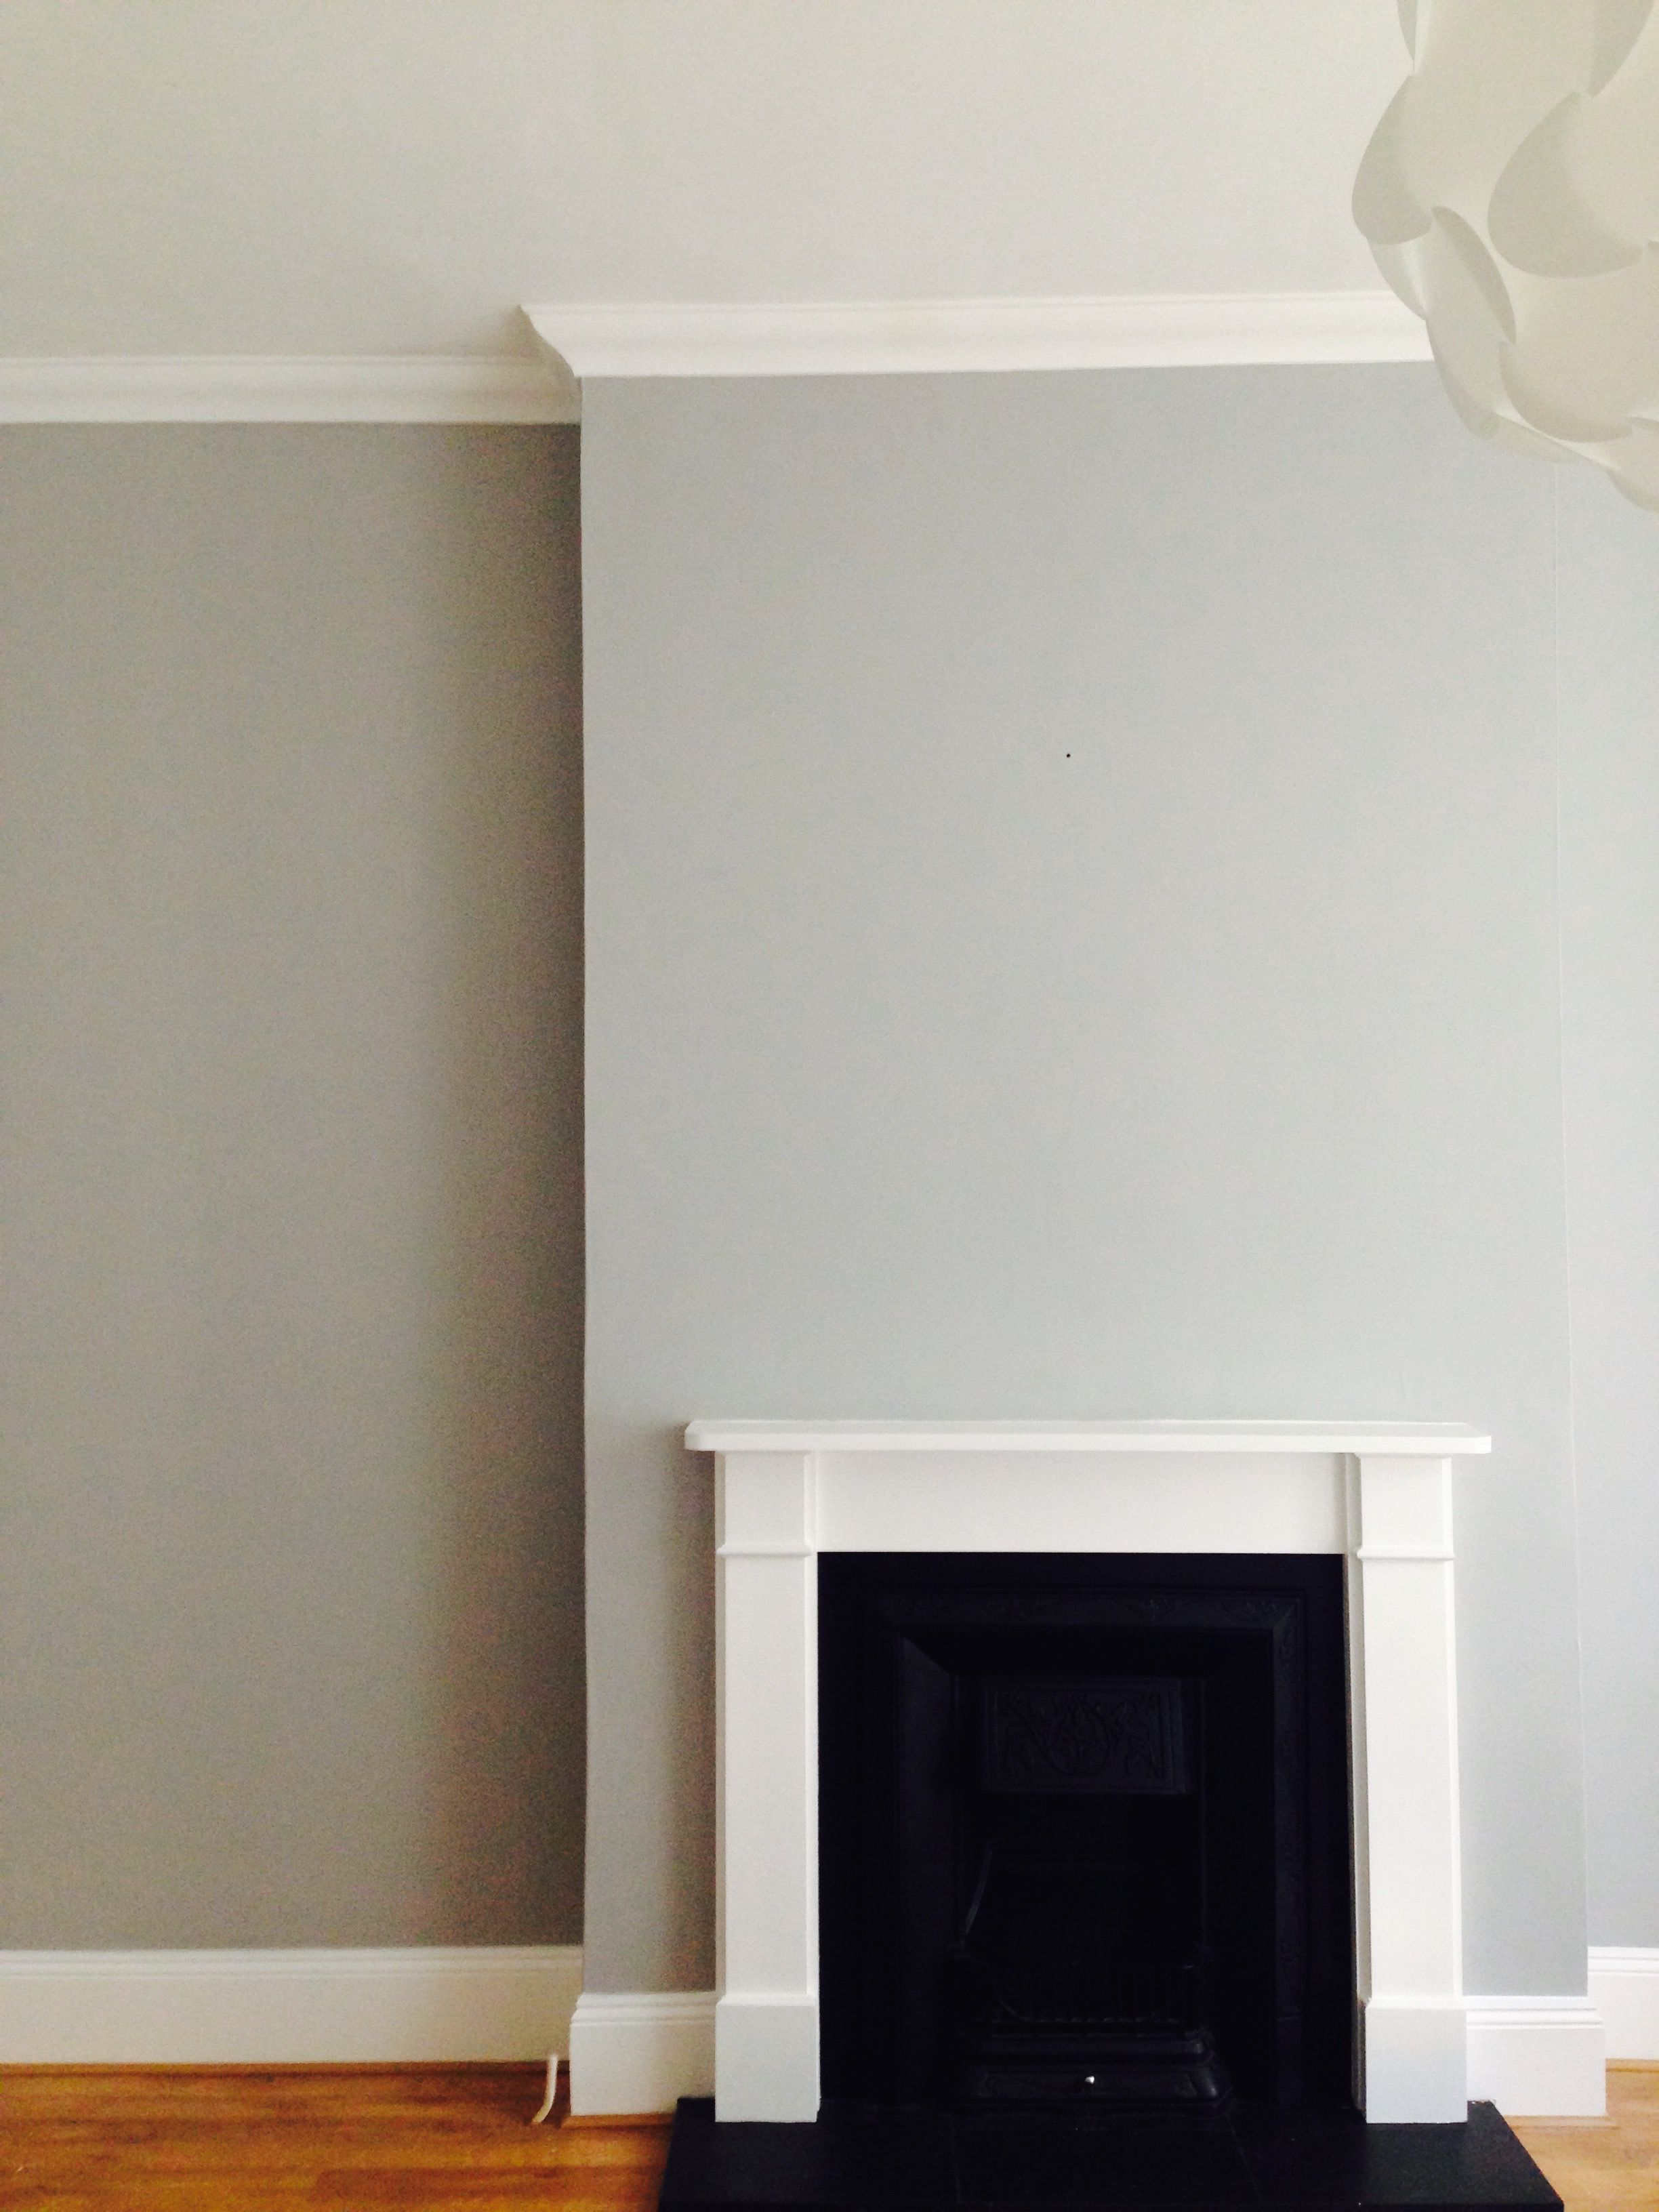 Dulux Chic Shadow In A Lovely Matt Finish Hallway And Landing Colour In 2020 Chic Shadow Living Room Paint Hallway Decorating